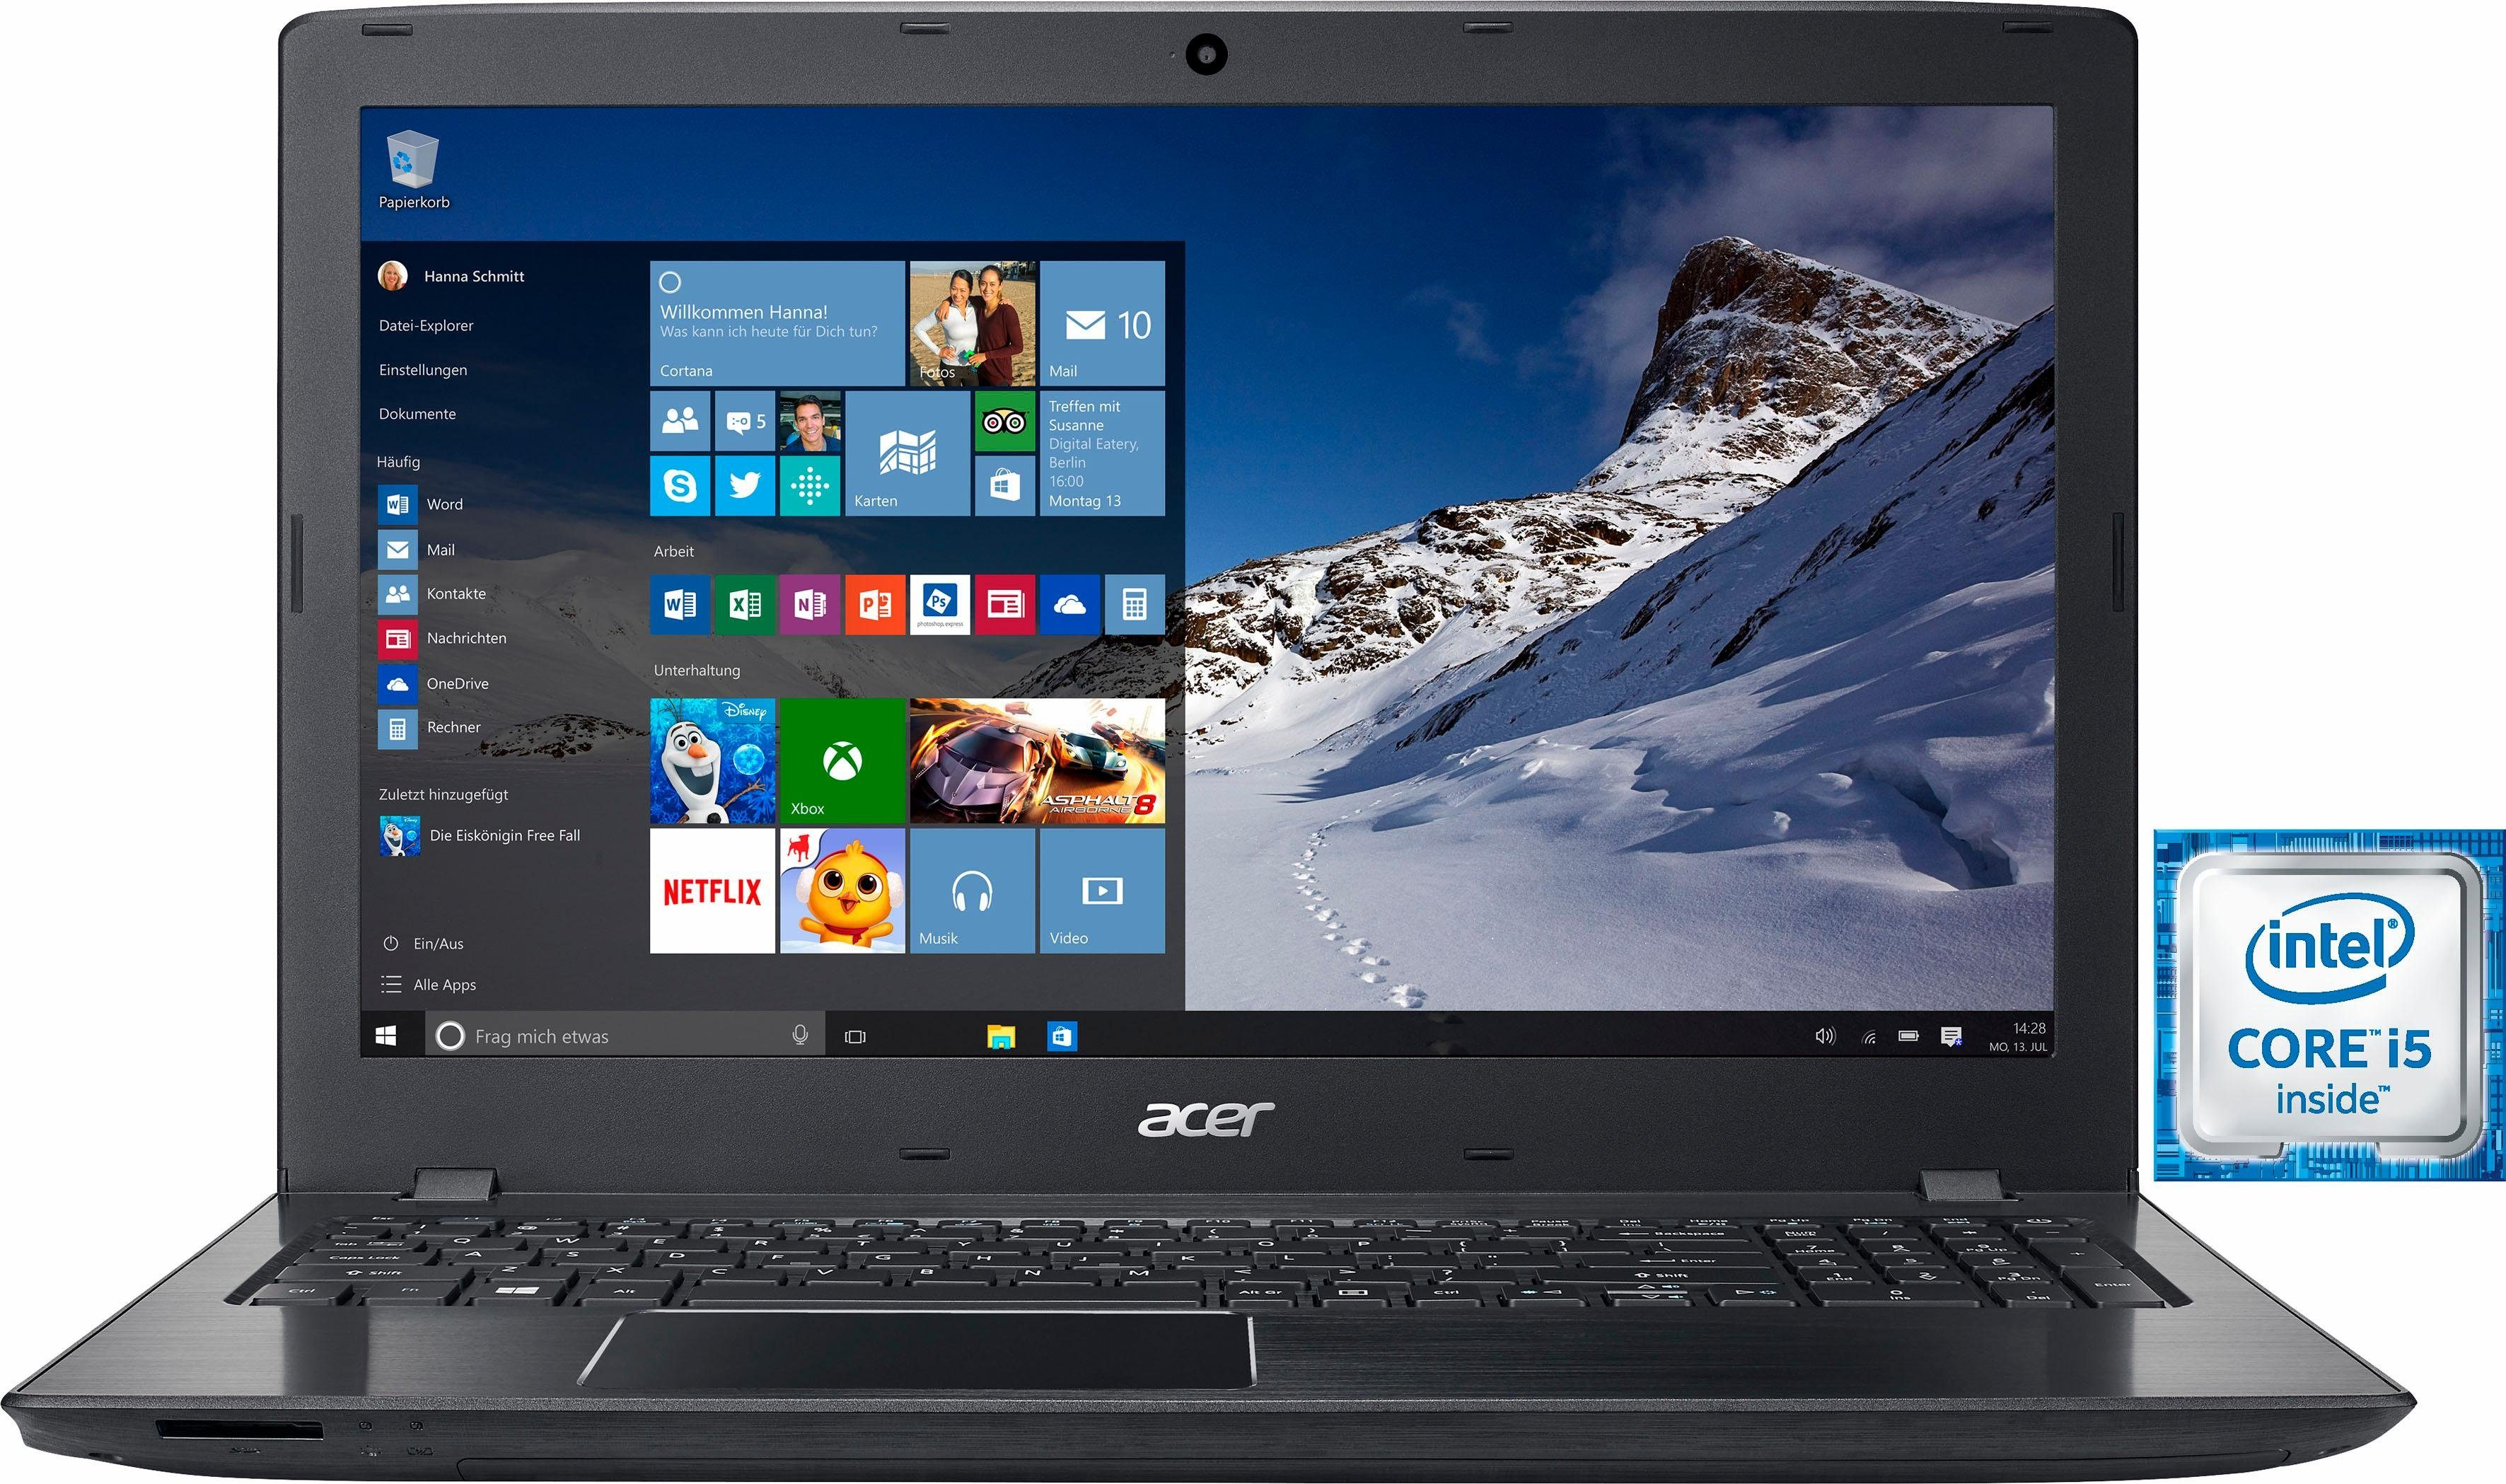 Acer Aspire E5-575G-50KT Notebook, Intel® Core™ i5, 39,6 cm (15,6 Zoll), 1000 GB Speicher